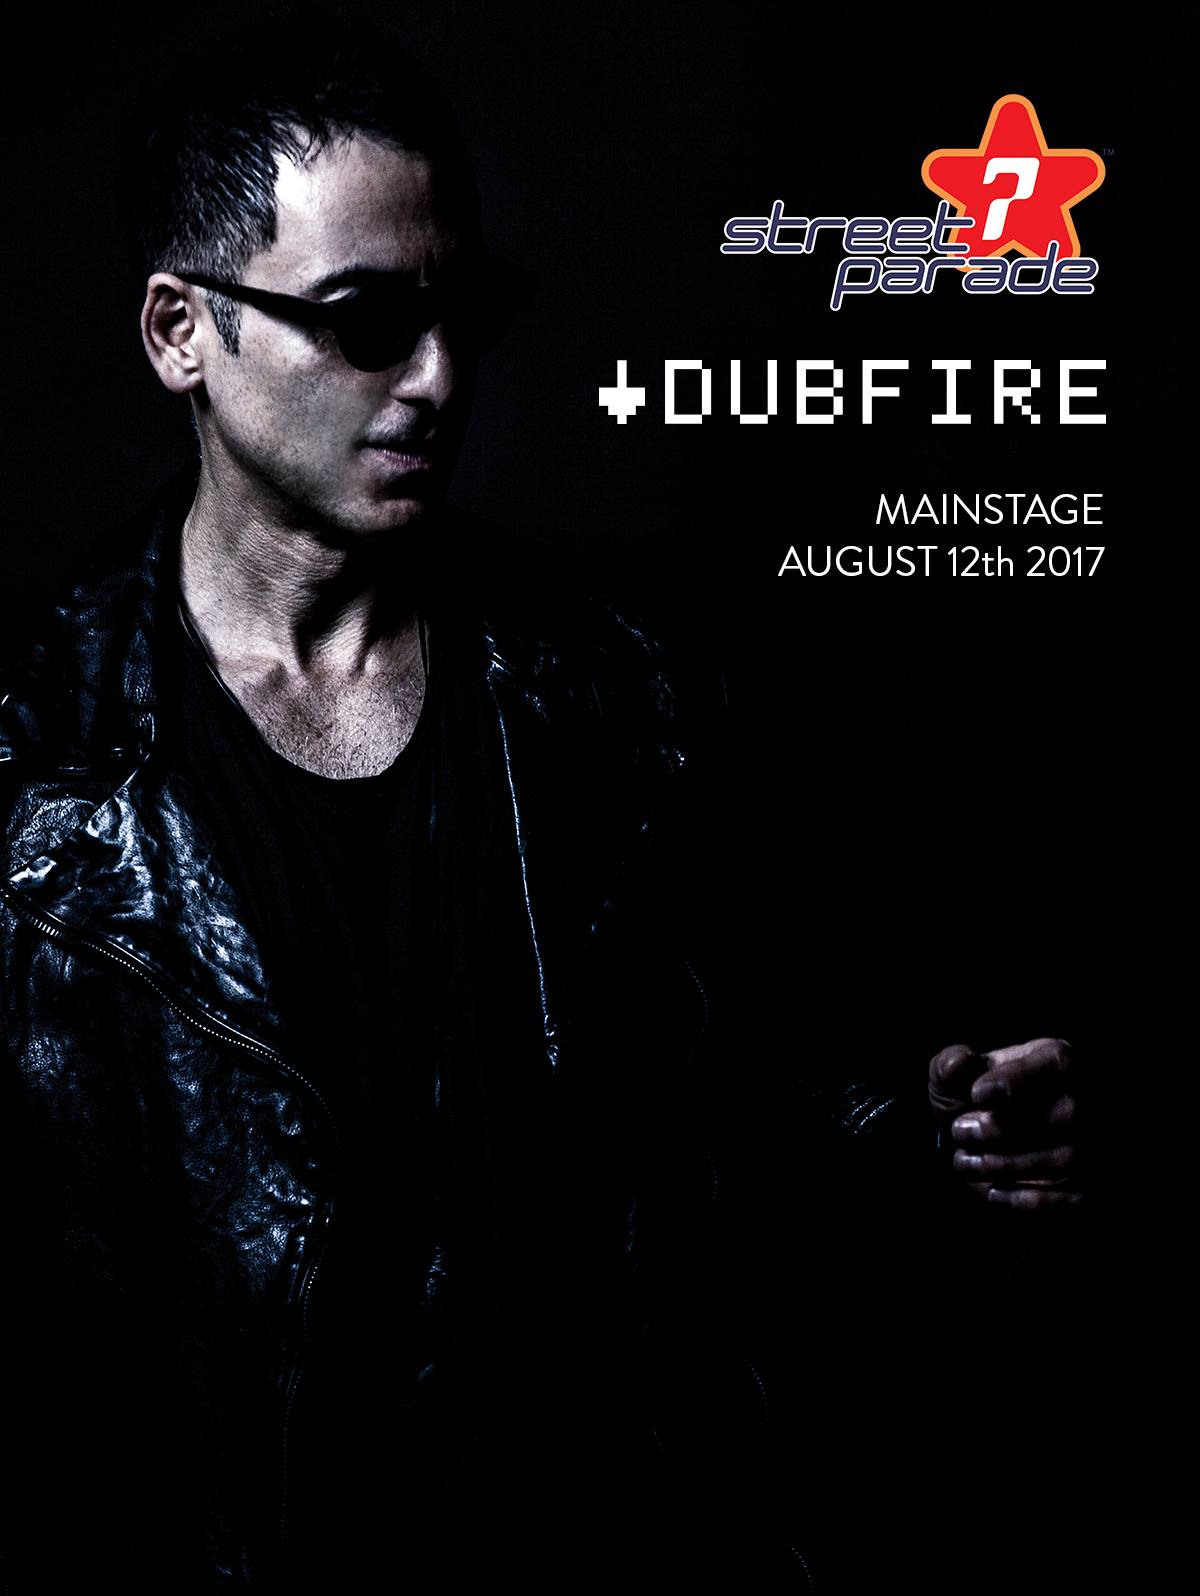 download → Dubfire - live at Street Parade 2017 (Zurich) - 12-Aug-2017